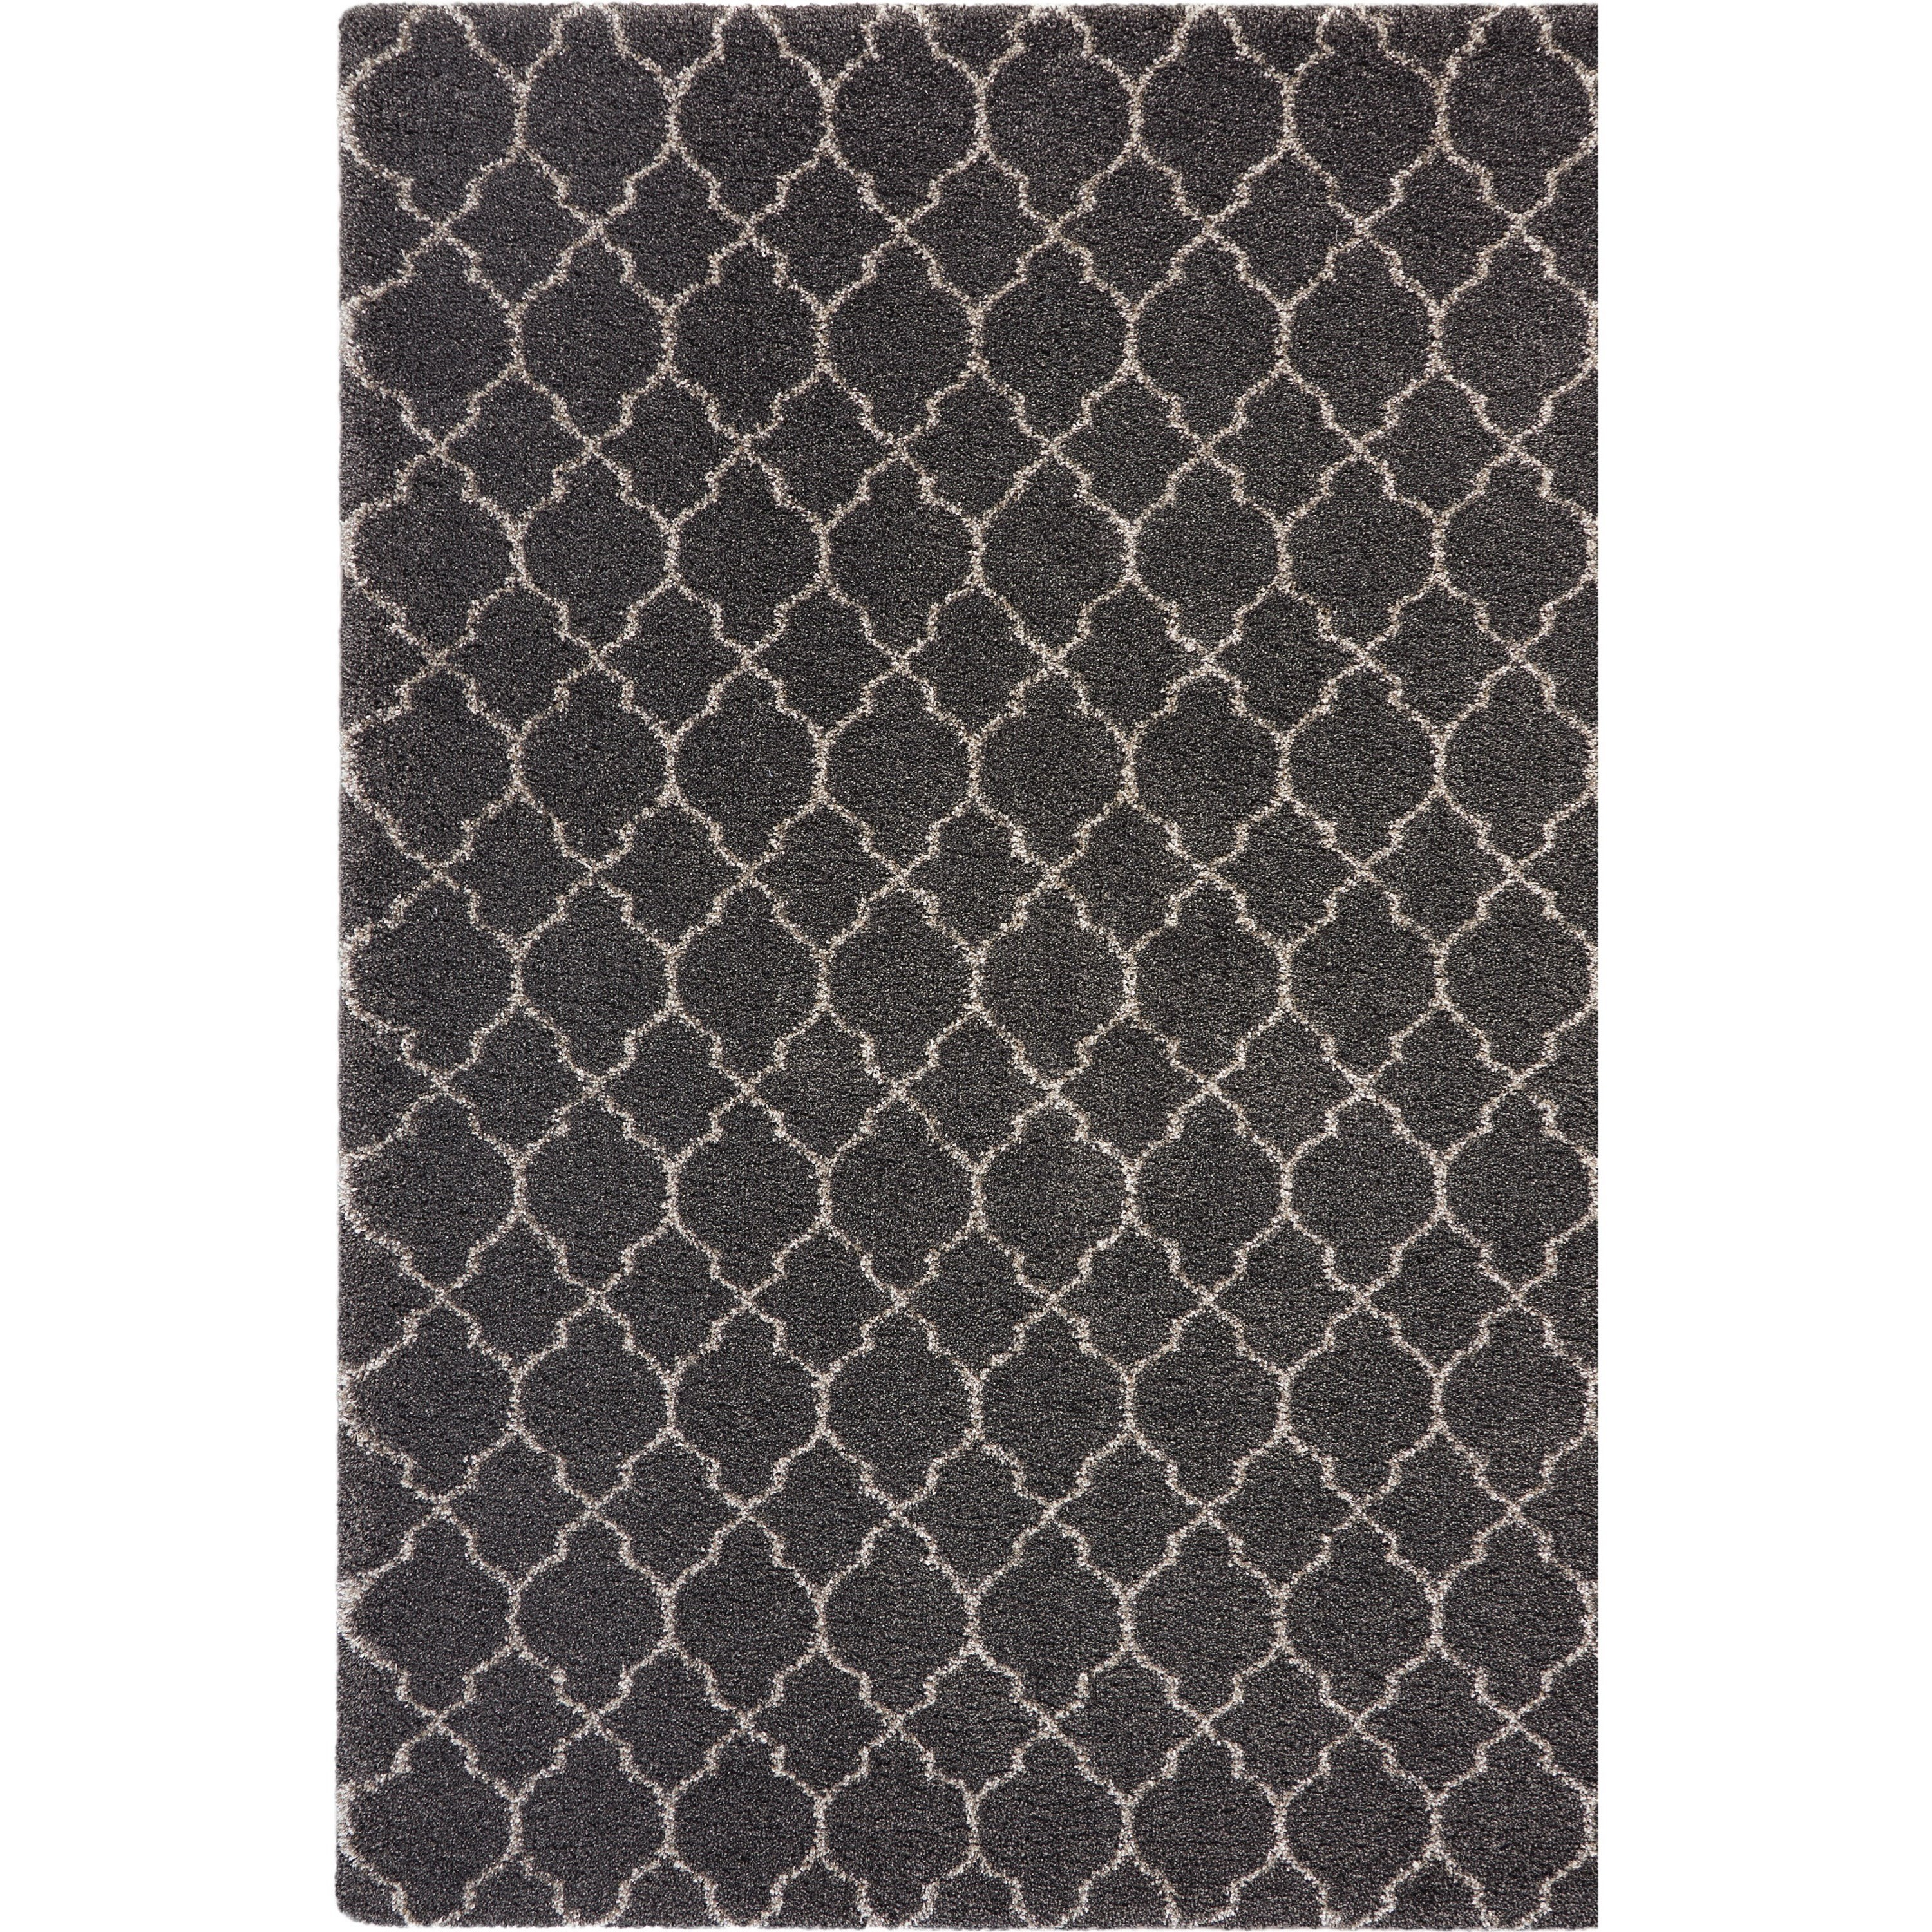 Amore Amore AMOR2 Black 7'x10'   Rug by Nourison at Home Collections Furniture